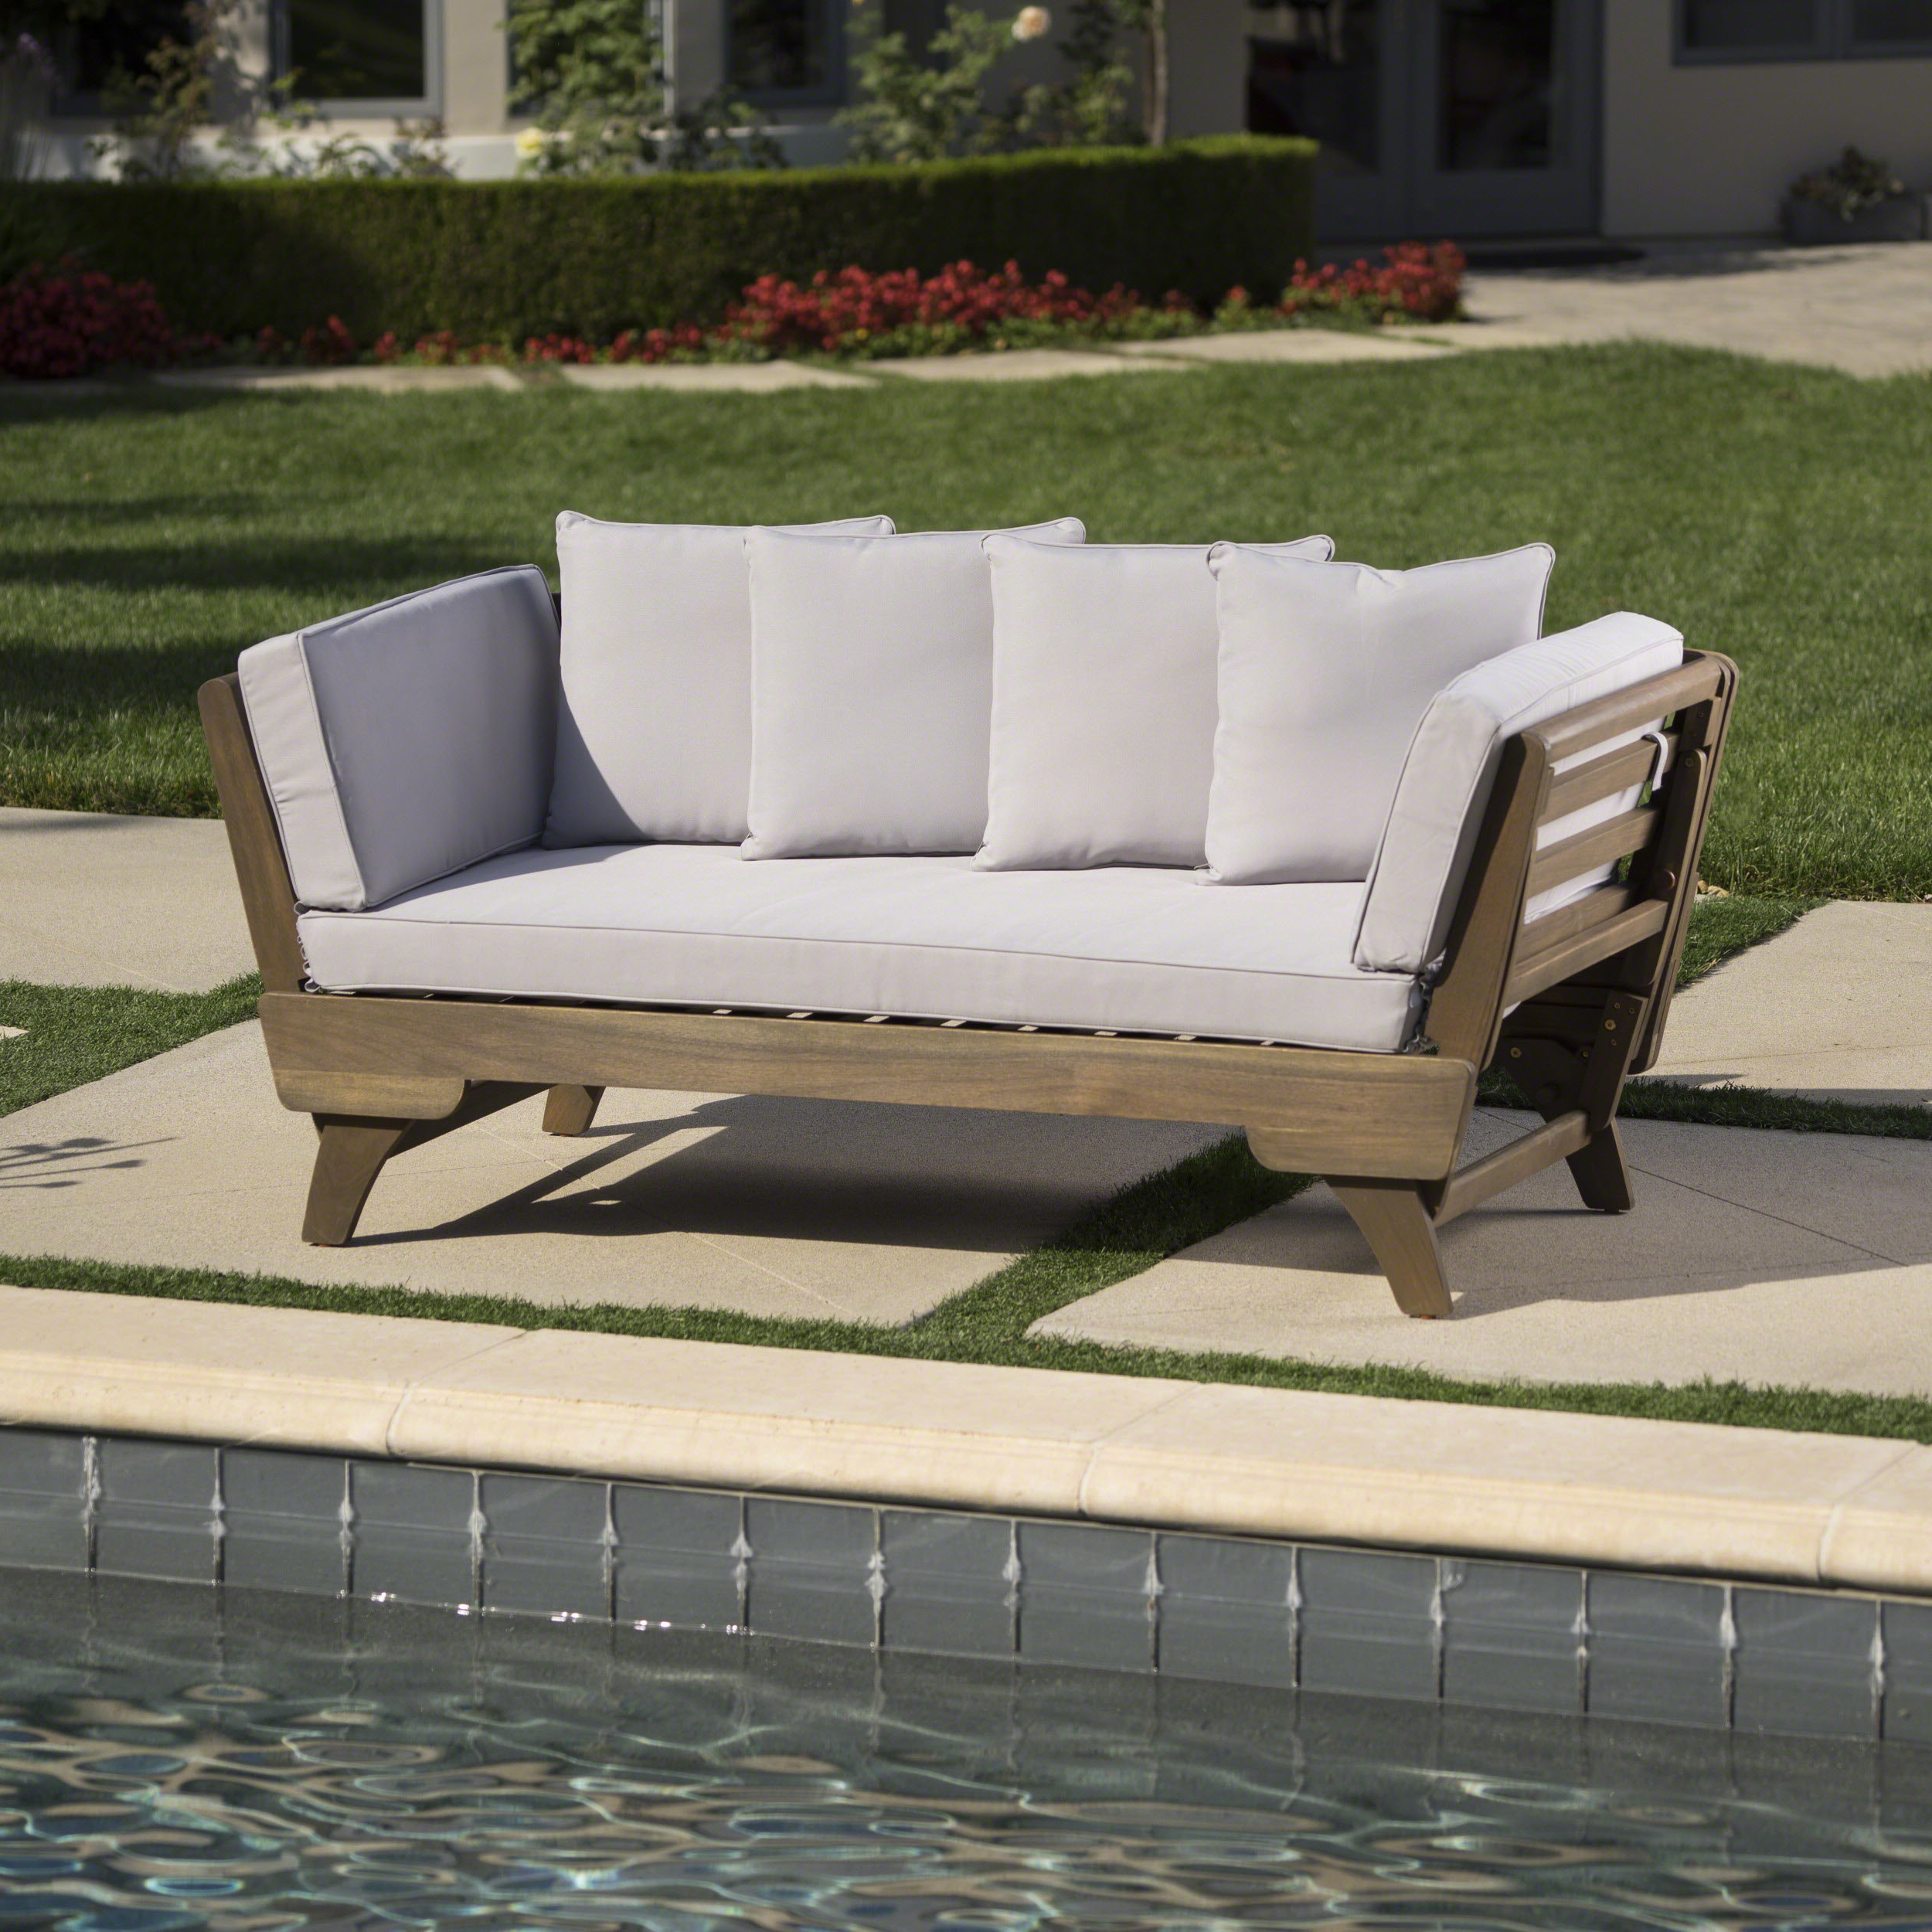 Union Rustic Ellanti Teak Patio Daybed With Cushions For Well Liked Grosvenor Bamboo Patio Daybeds With Cushions (View 11 of 20)